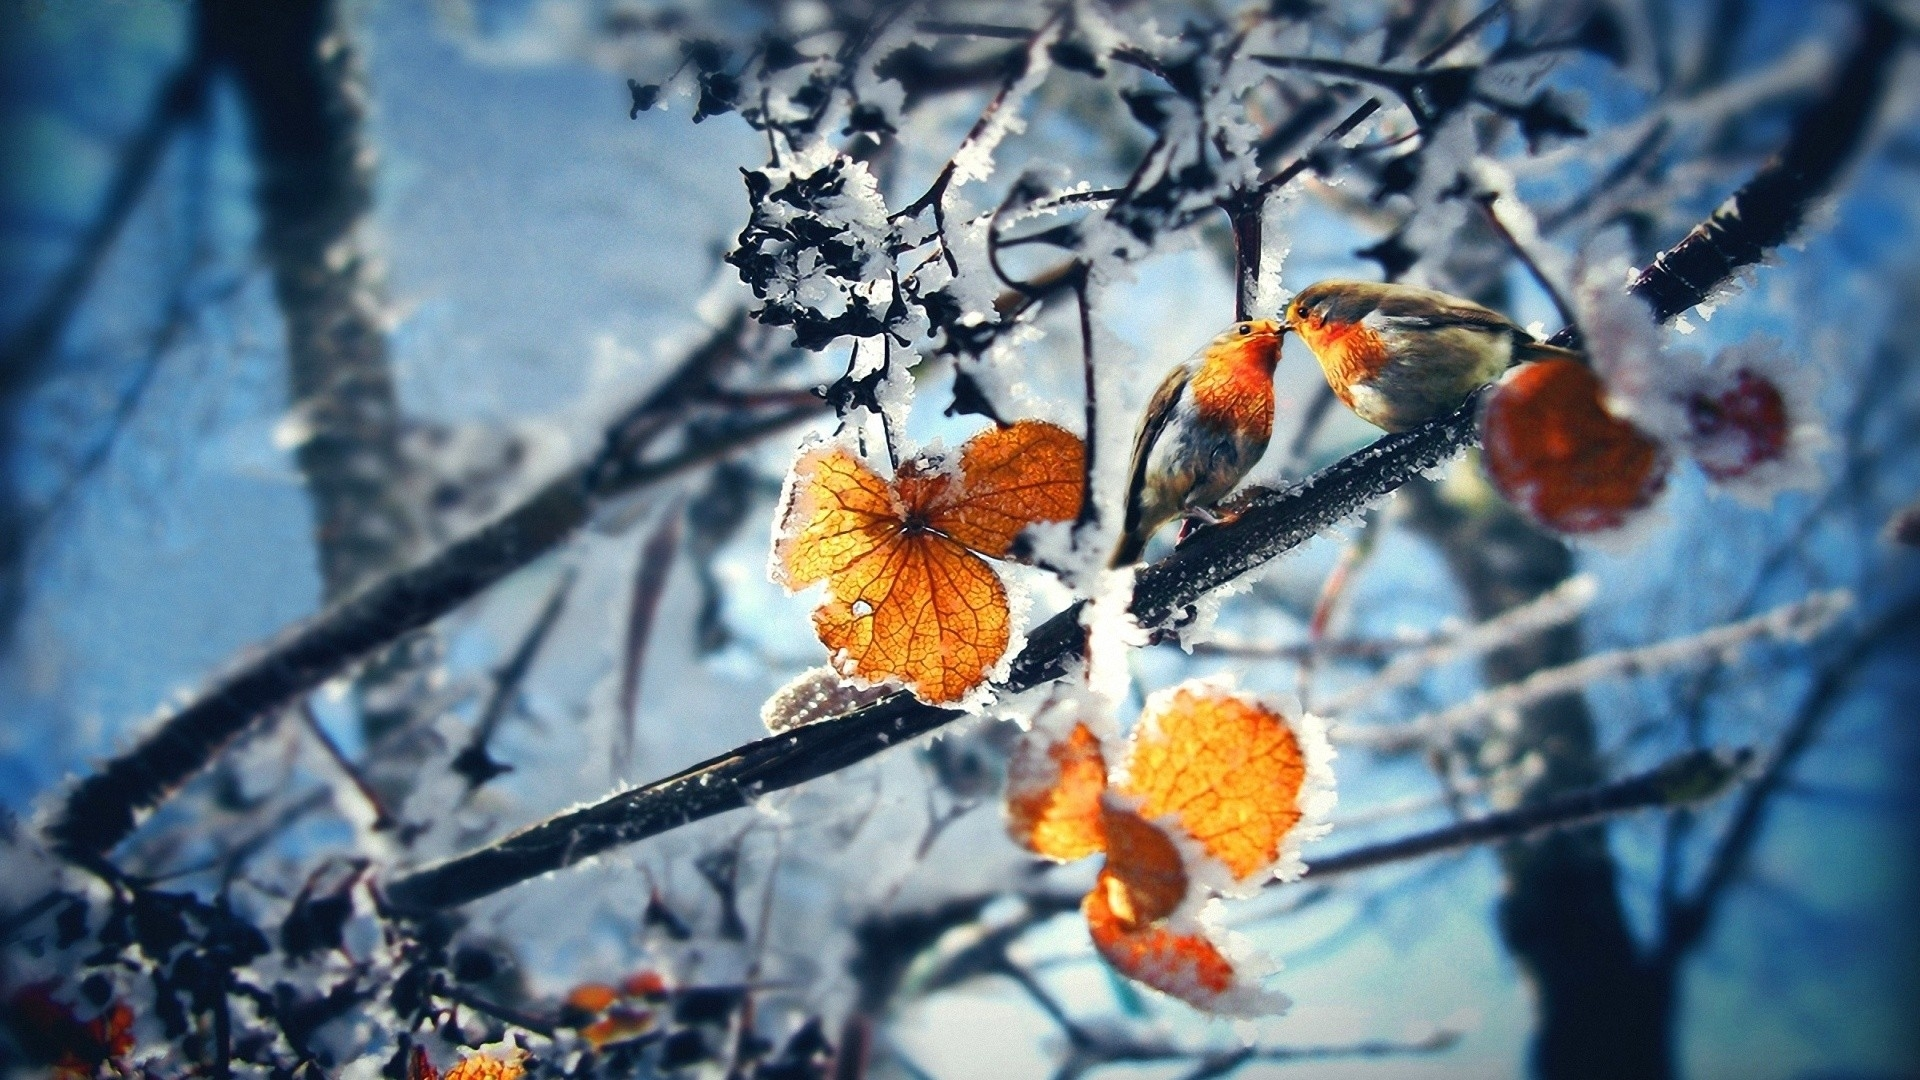 42084 download wallpaper Landscape, Winter, Leaves screensavers and pictures for free